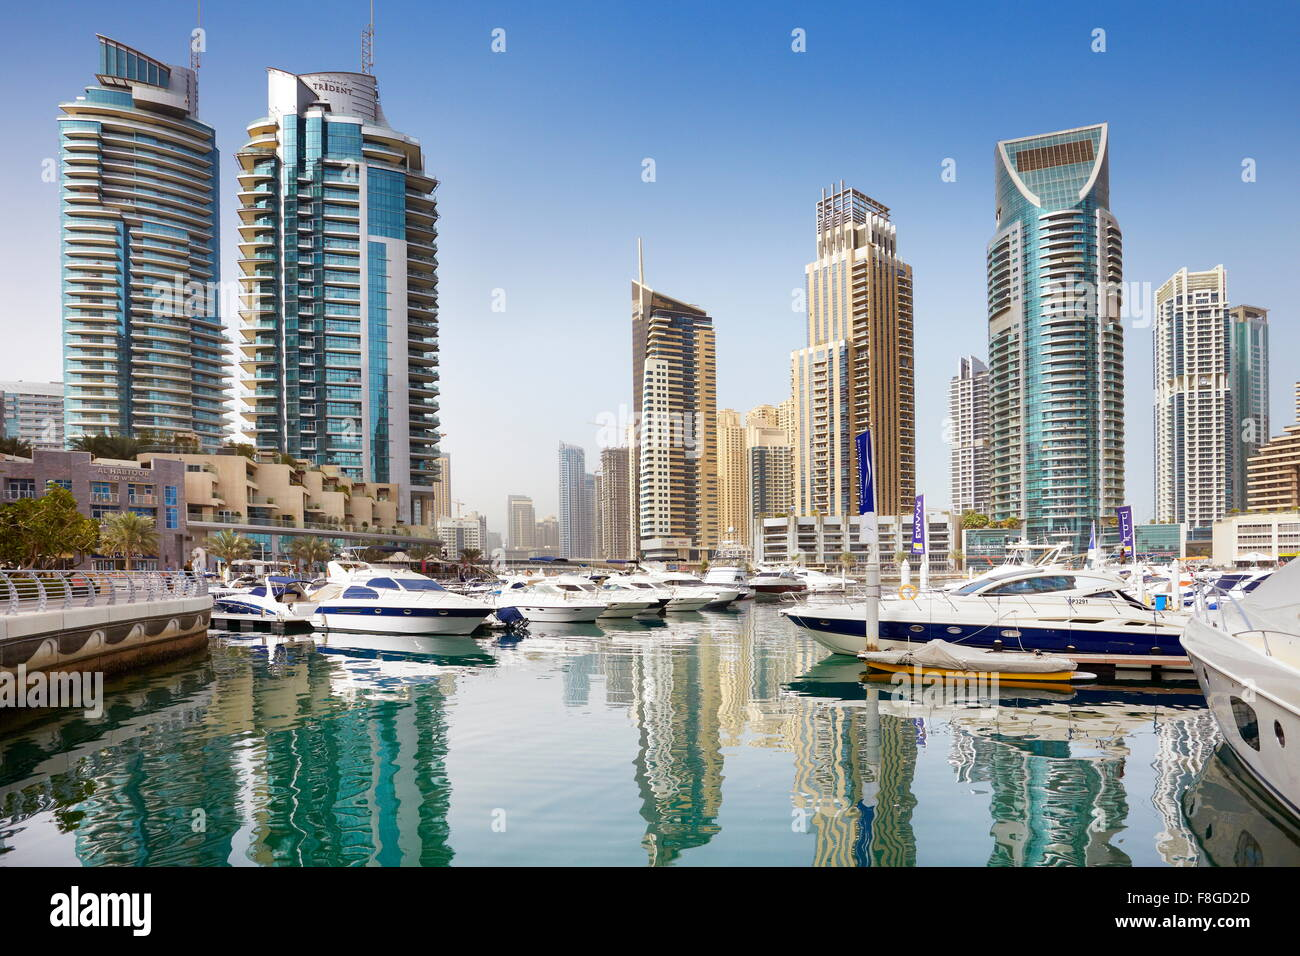 La ville de Dubaï - Marina, Emirats Arabes Unis Photo Stock